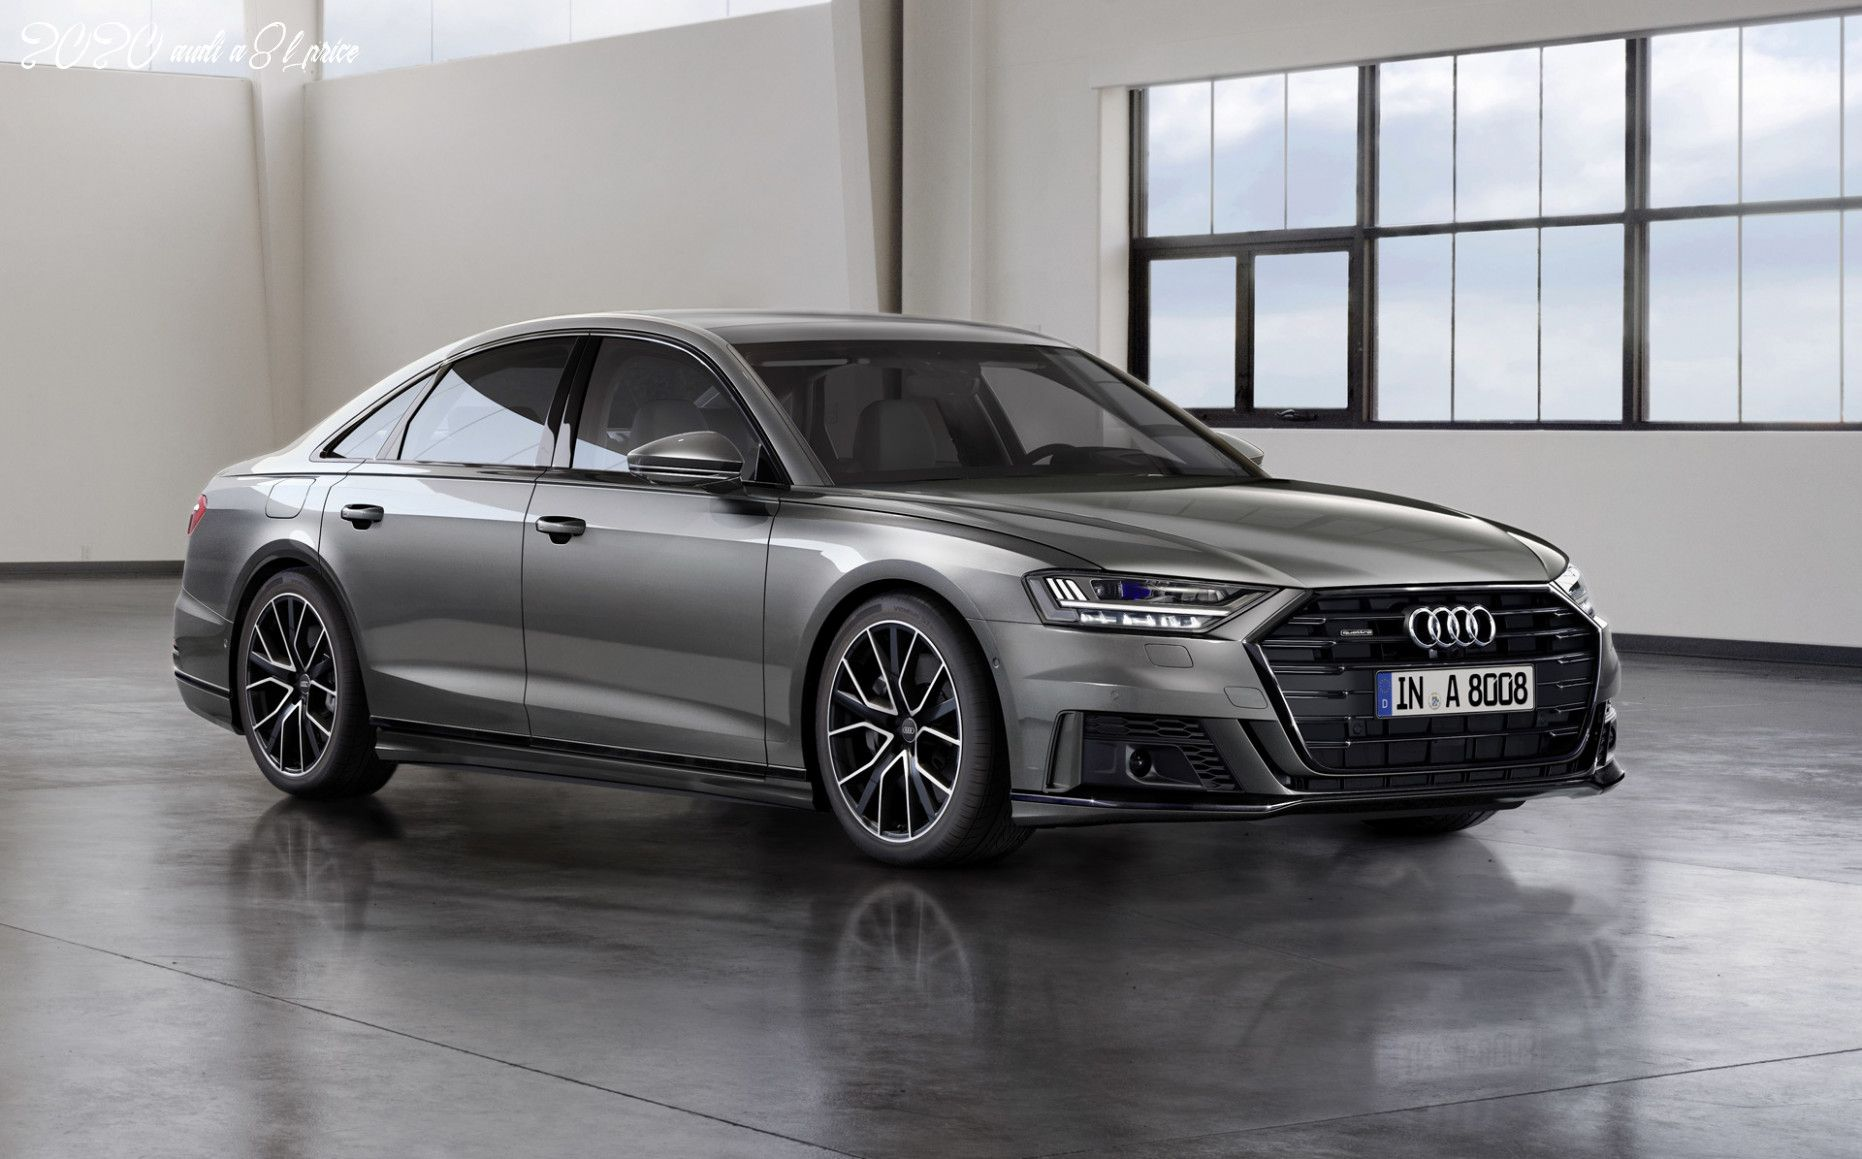 2020 Audi A8l Price In 2020 Audi A8 Audi Car